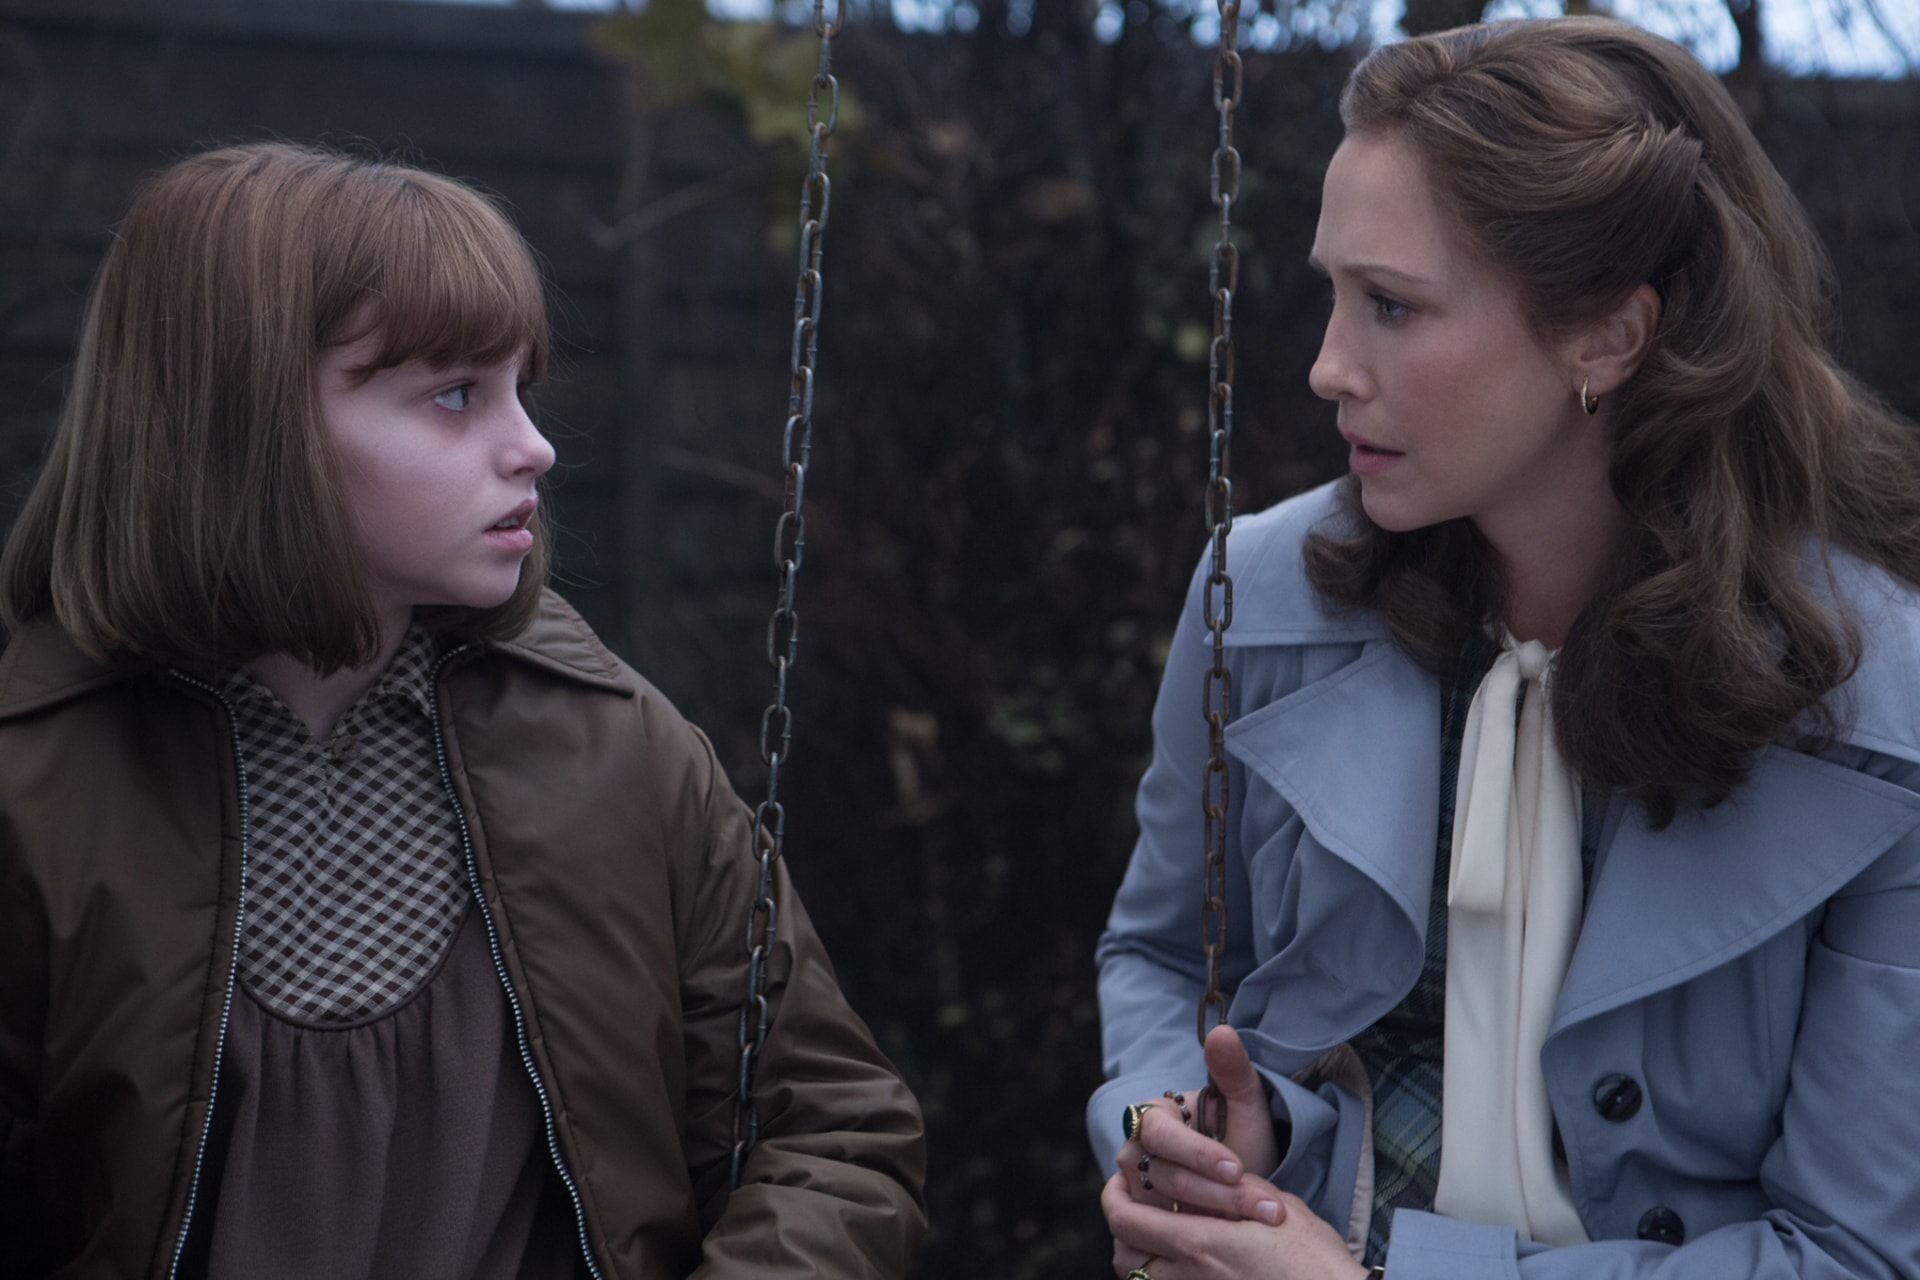 Janet Hodgson and VERA FARMIGA as Lorraine Warren looking at each other on a swing set